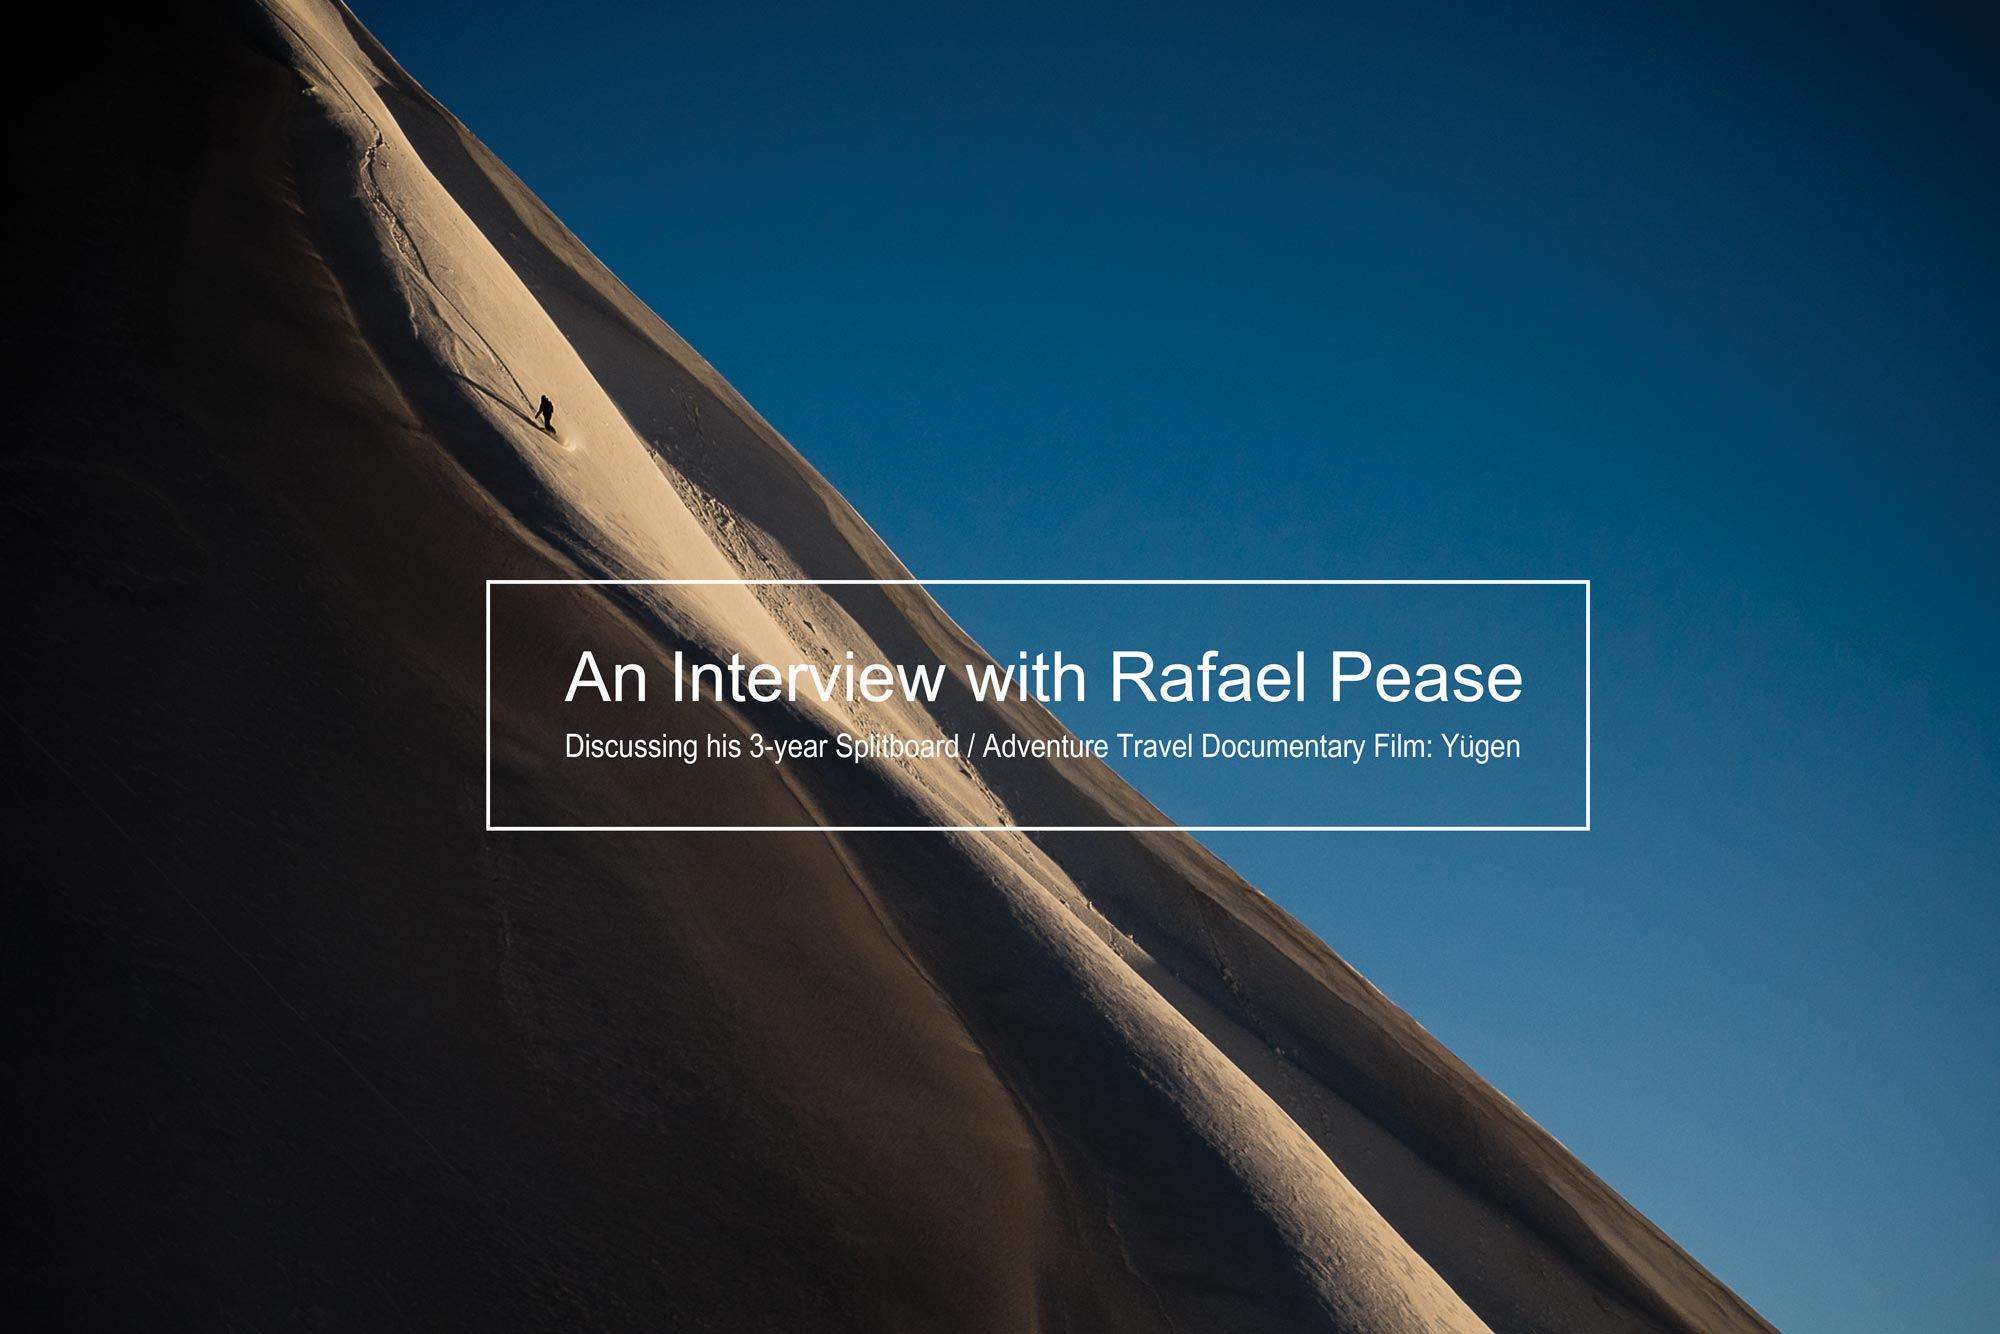 An Interview with Rafael Pease banner